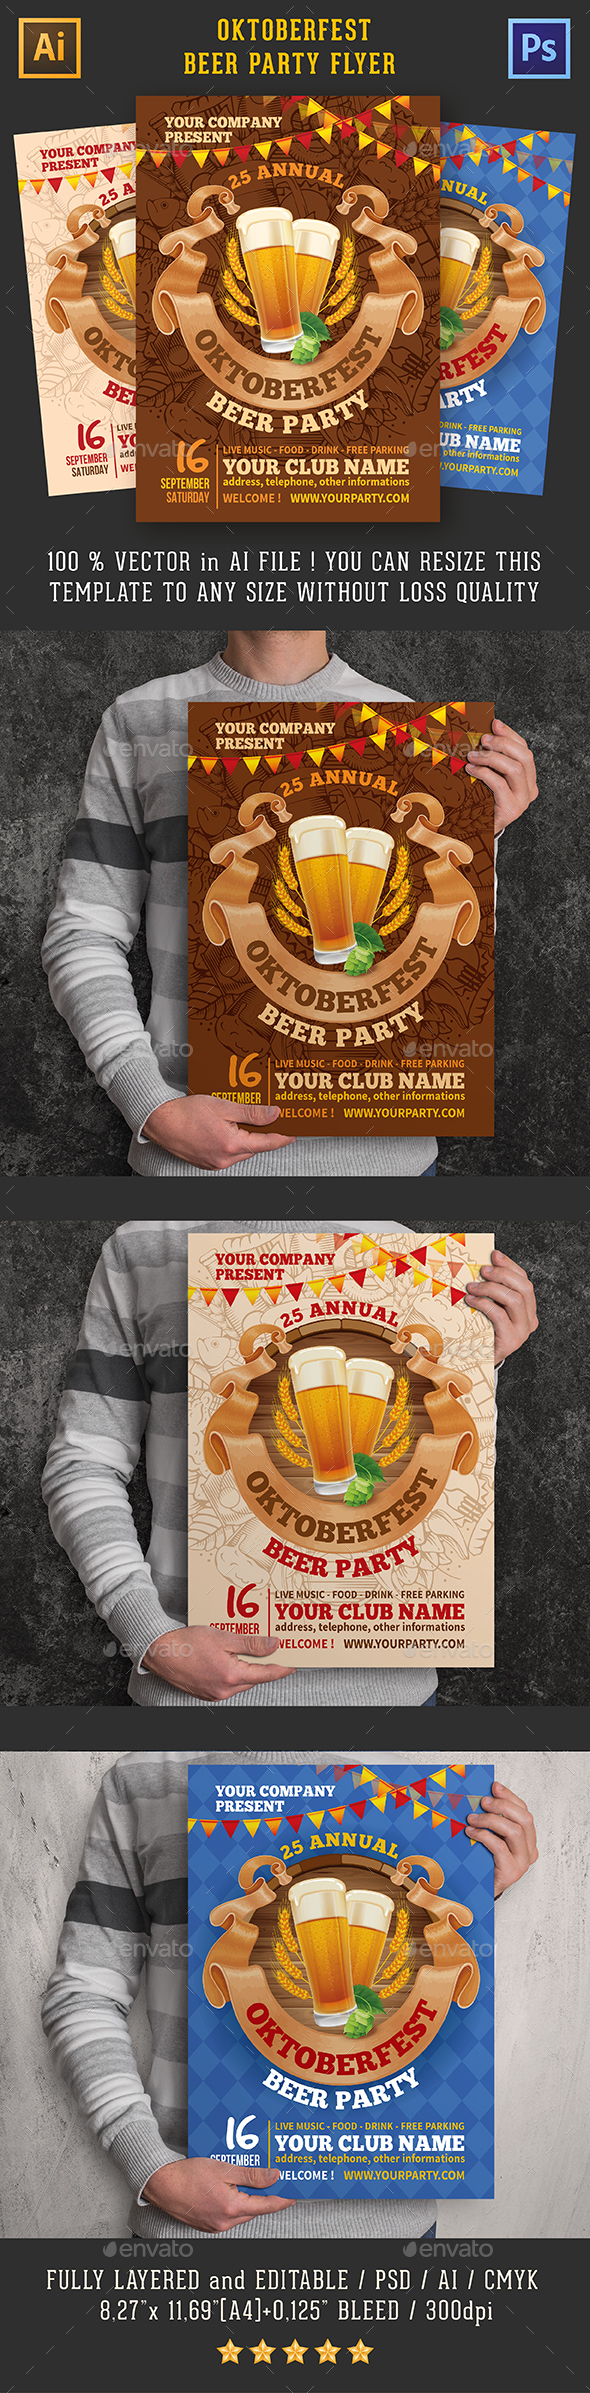 Oktoberfest Beer Party Flyer Templates - Clubs & Parties Events